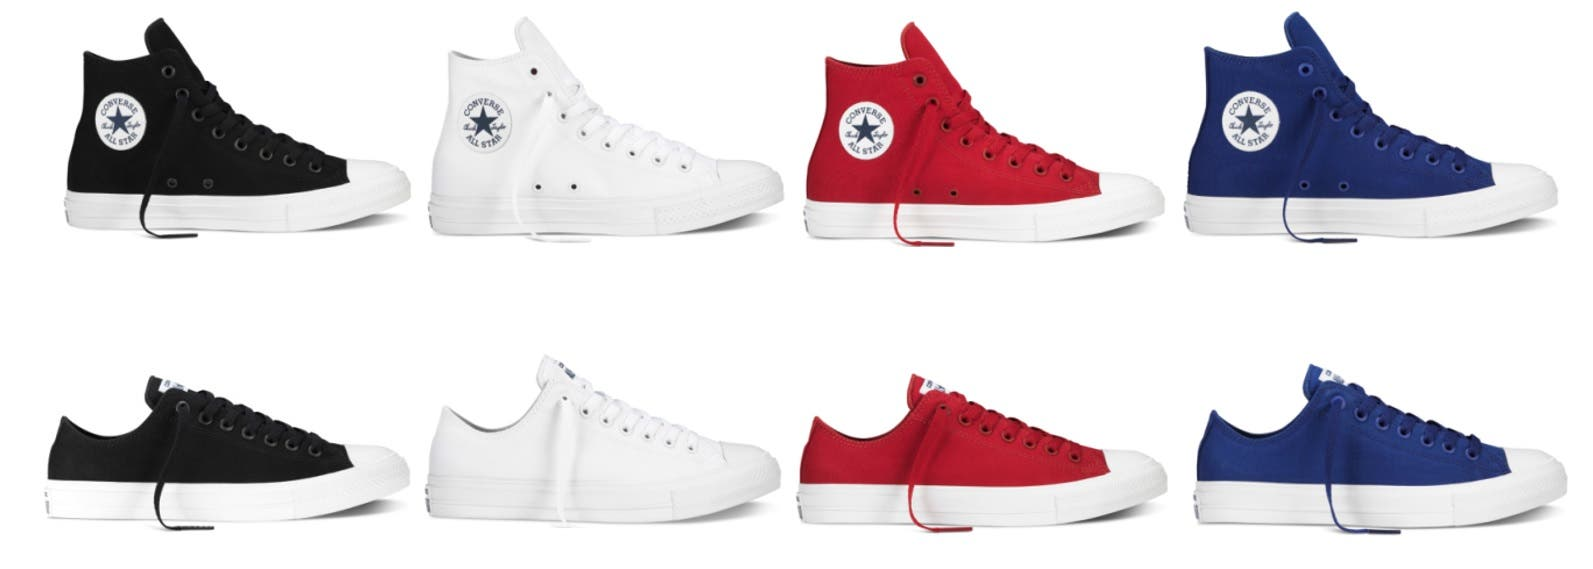 dc82dba58eba NEW Chuck Taylor All Star 2 Now in Manila  Converse Updates Iconic ...